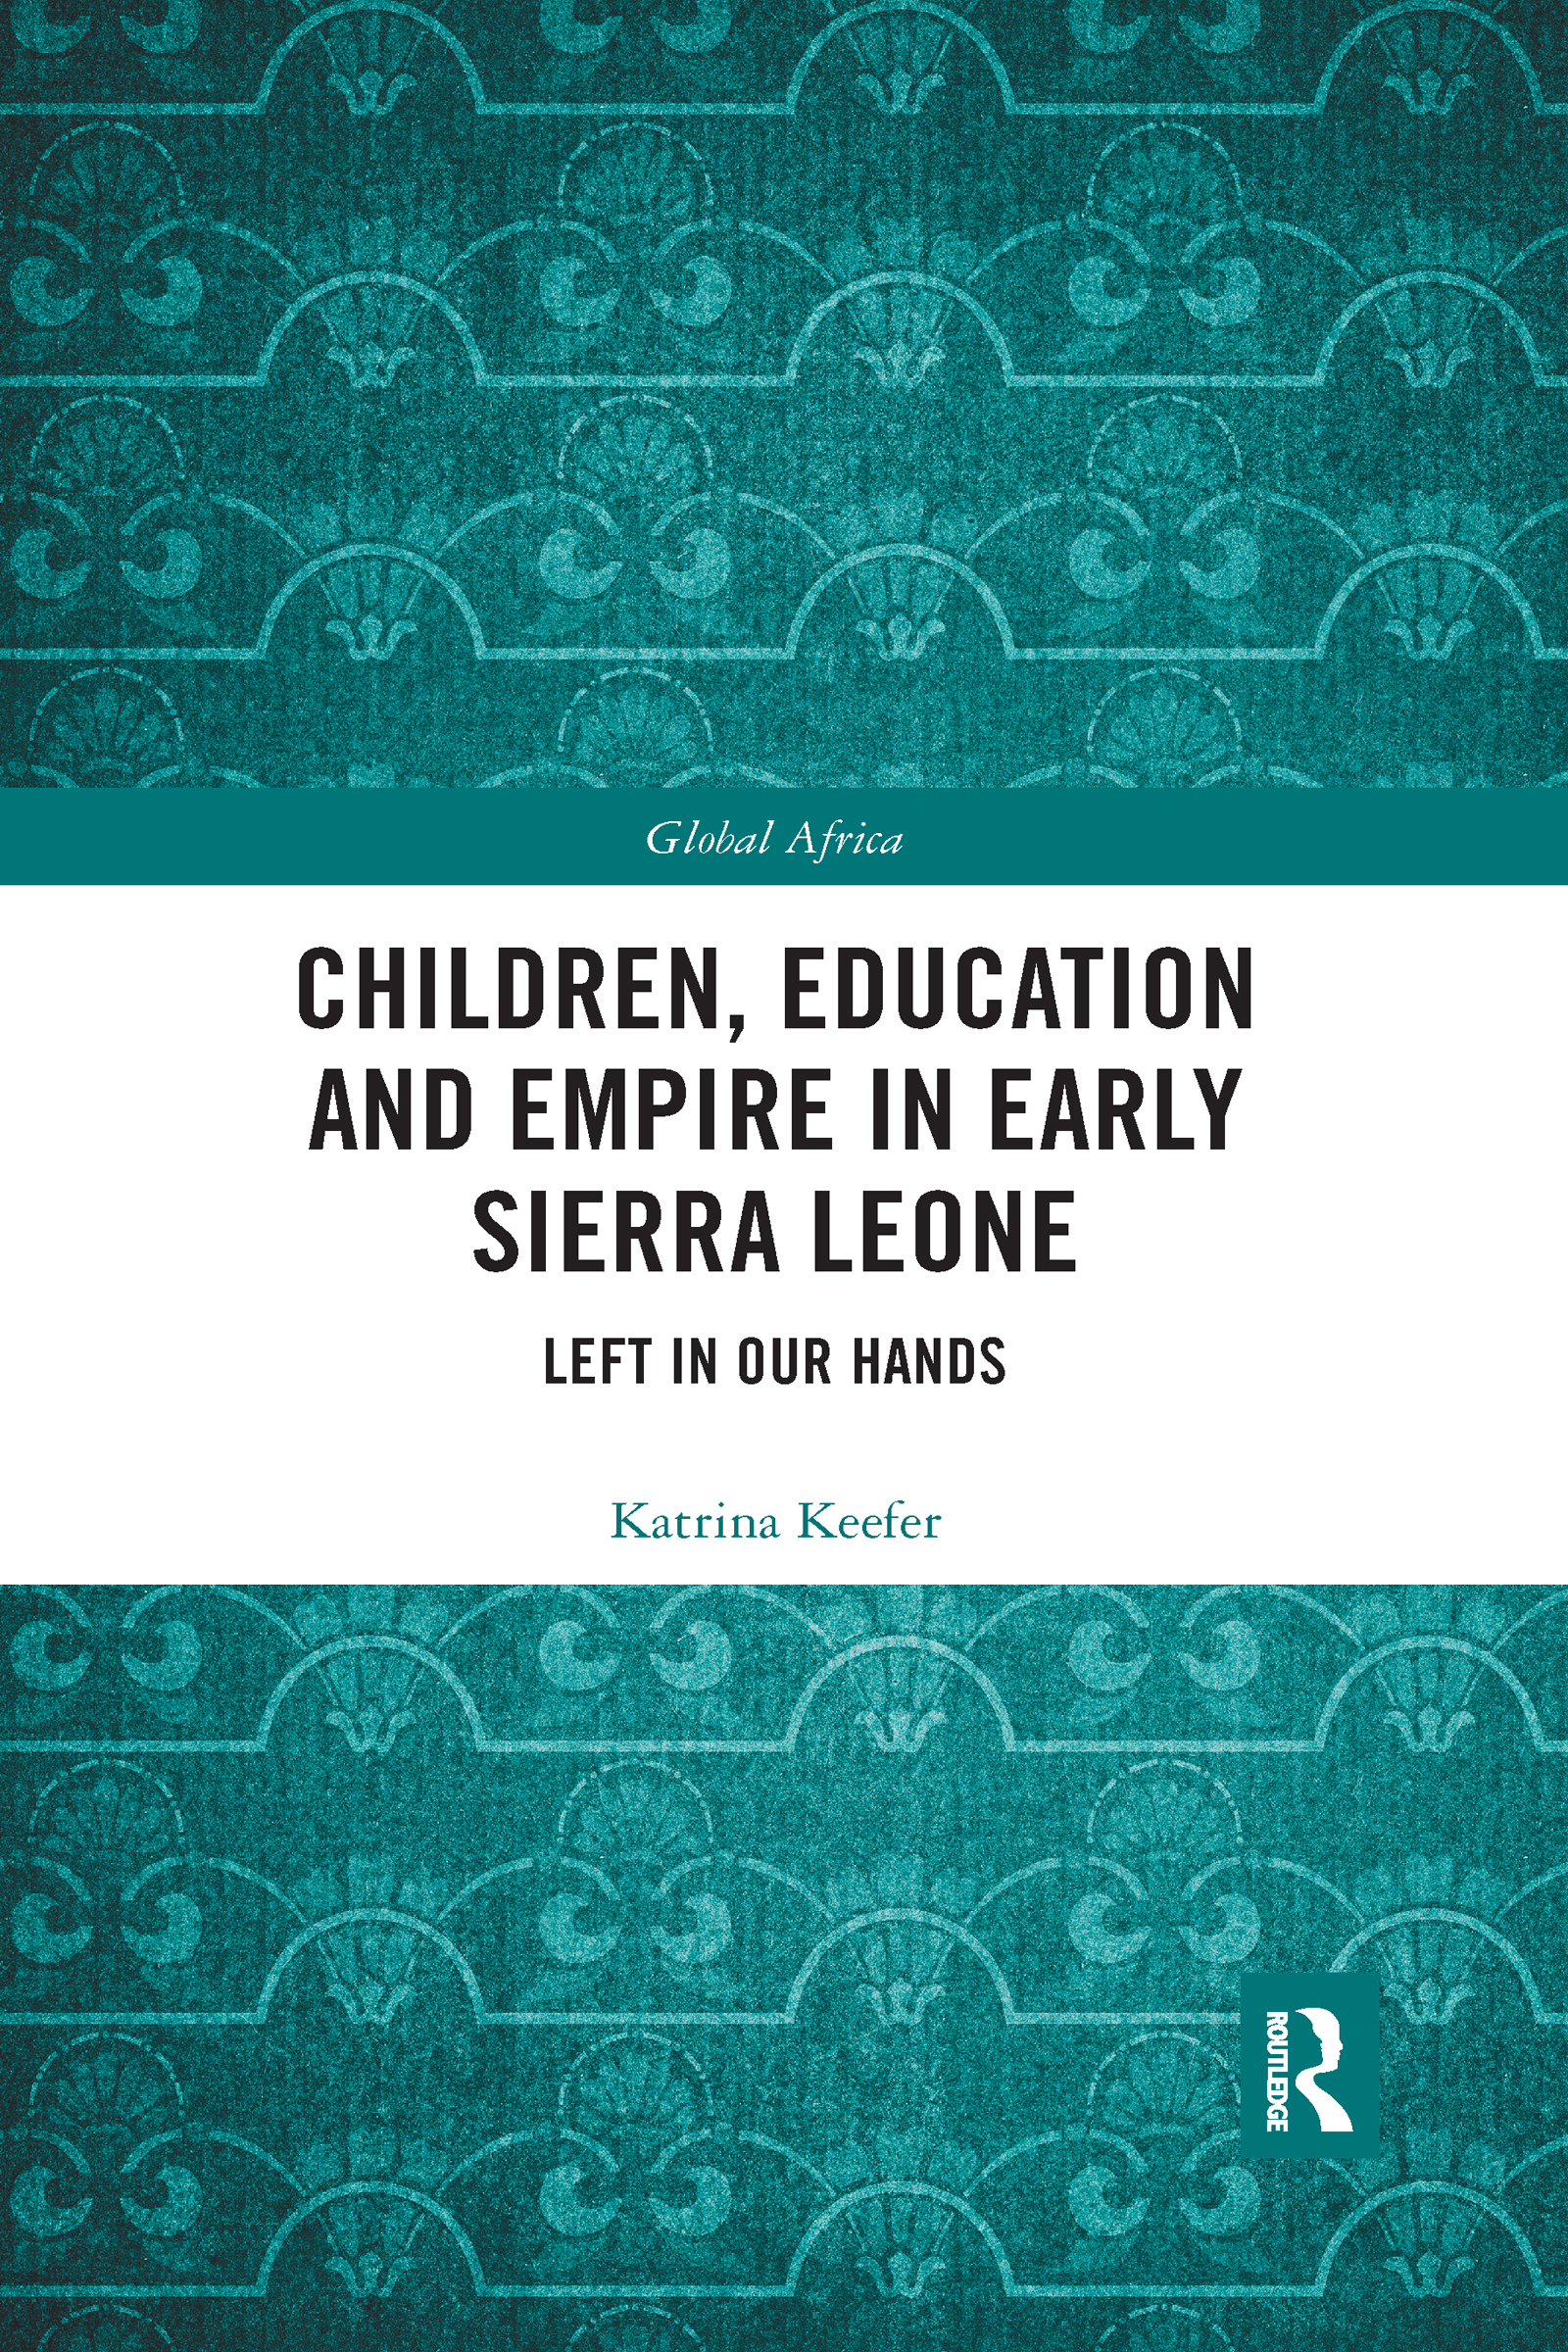 Children, Education and Empire in Early Sierra Leone